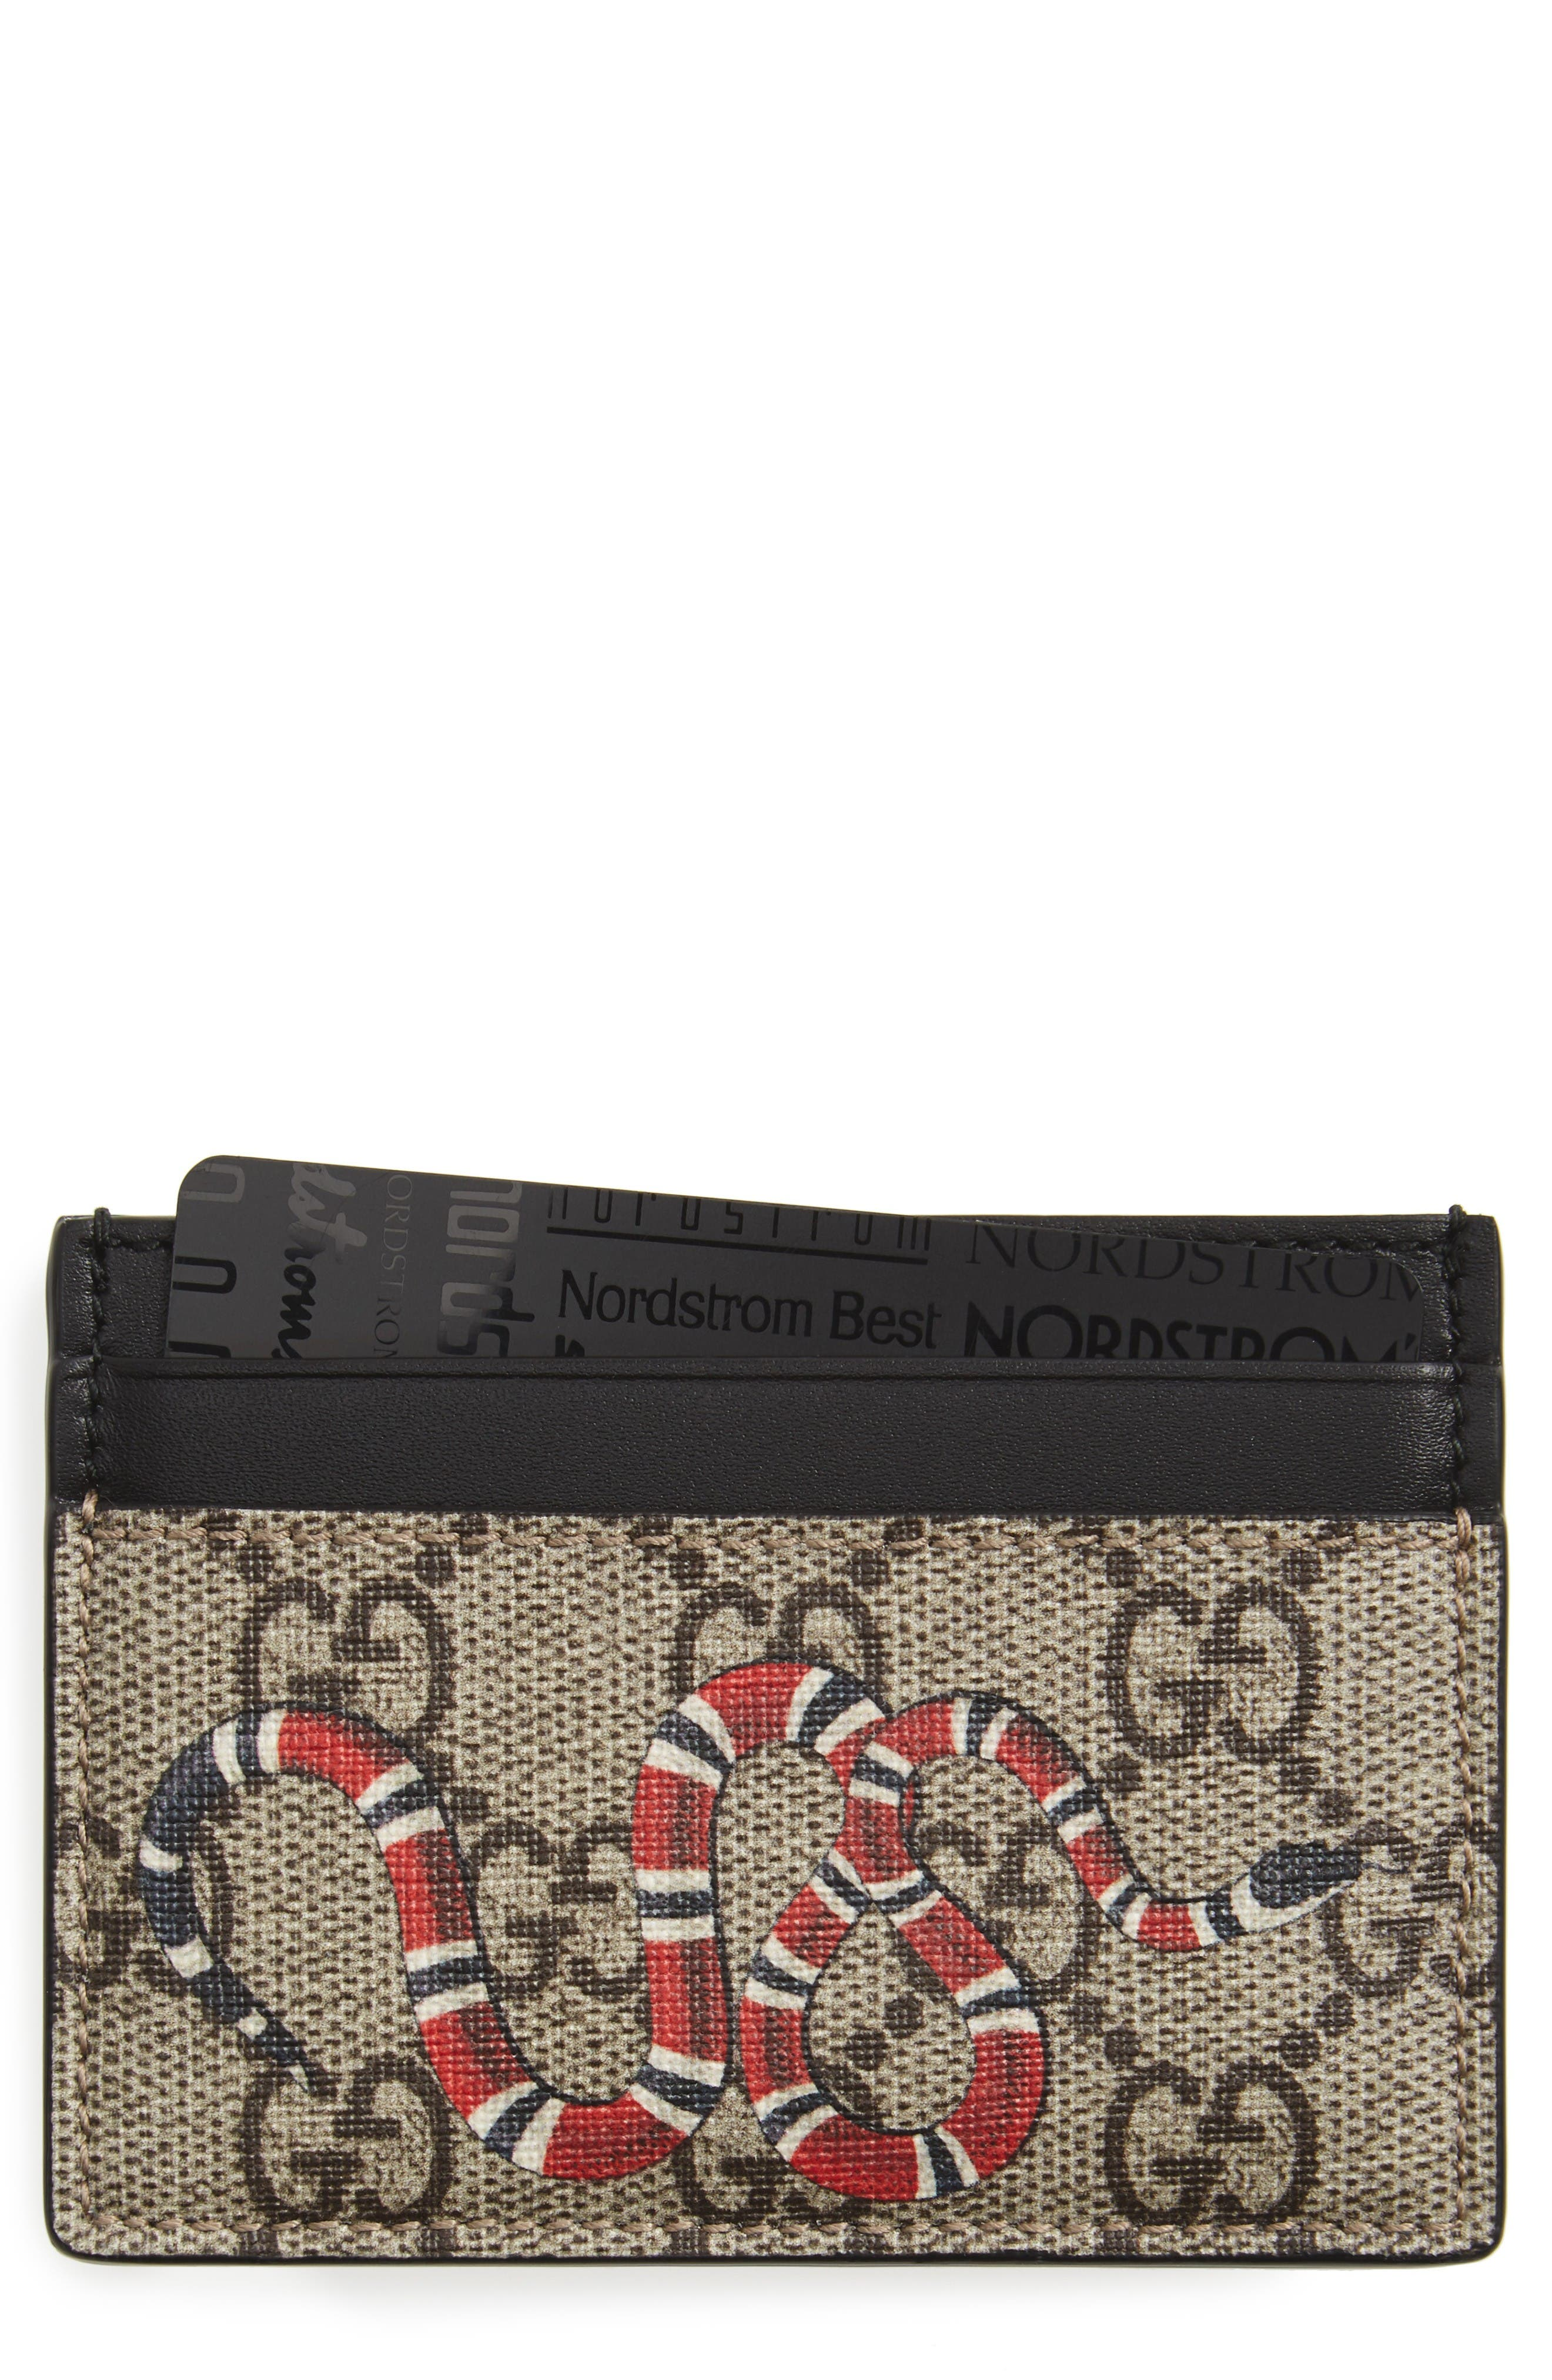 gucci keychain wallet. gucci serig snake print card case keychain wallet a